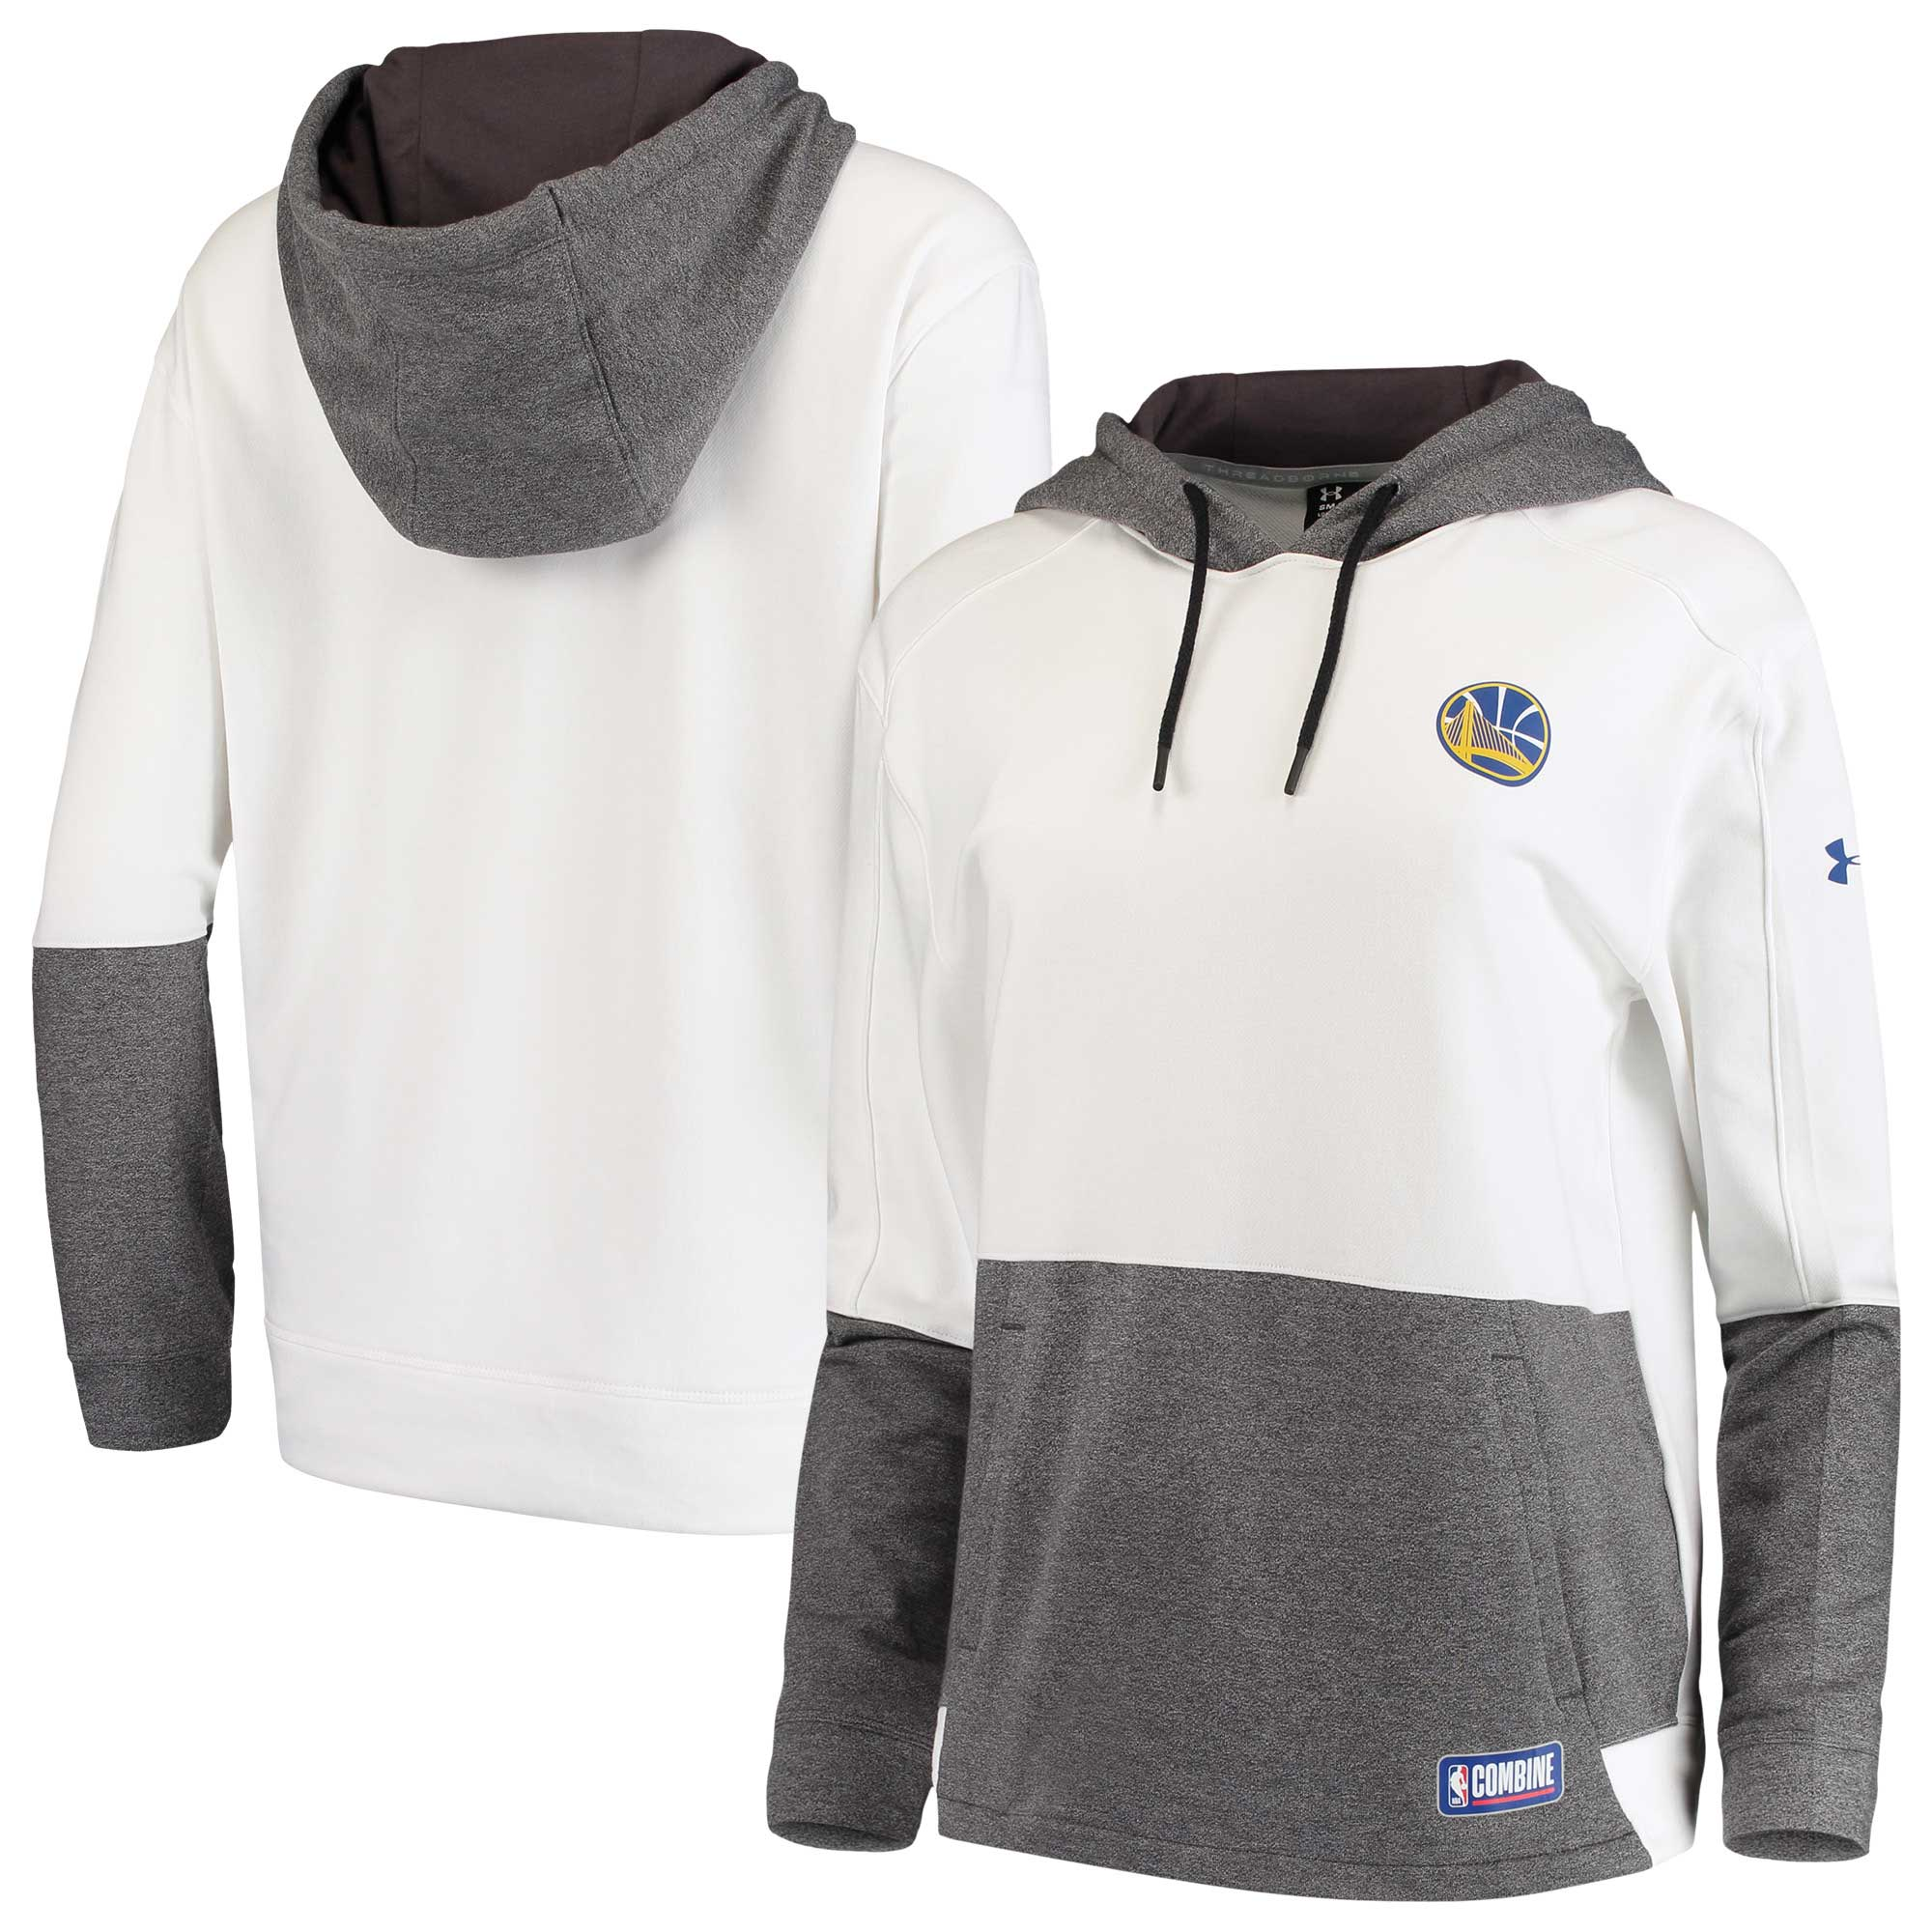 Golden State Warriors Under Armour Women's Combine Authentic Baseline Layer Threadborne Hoodie - White/Gray